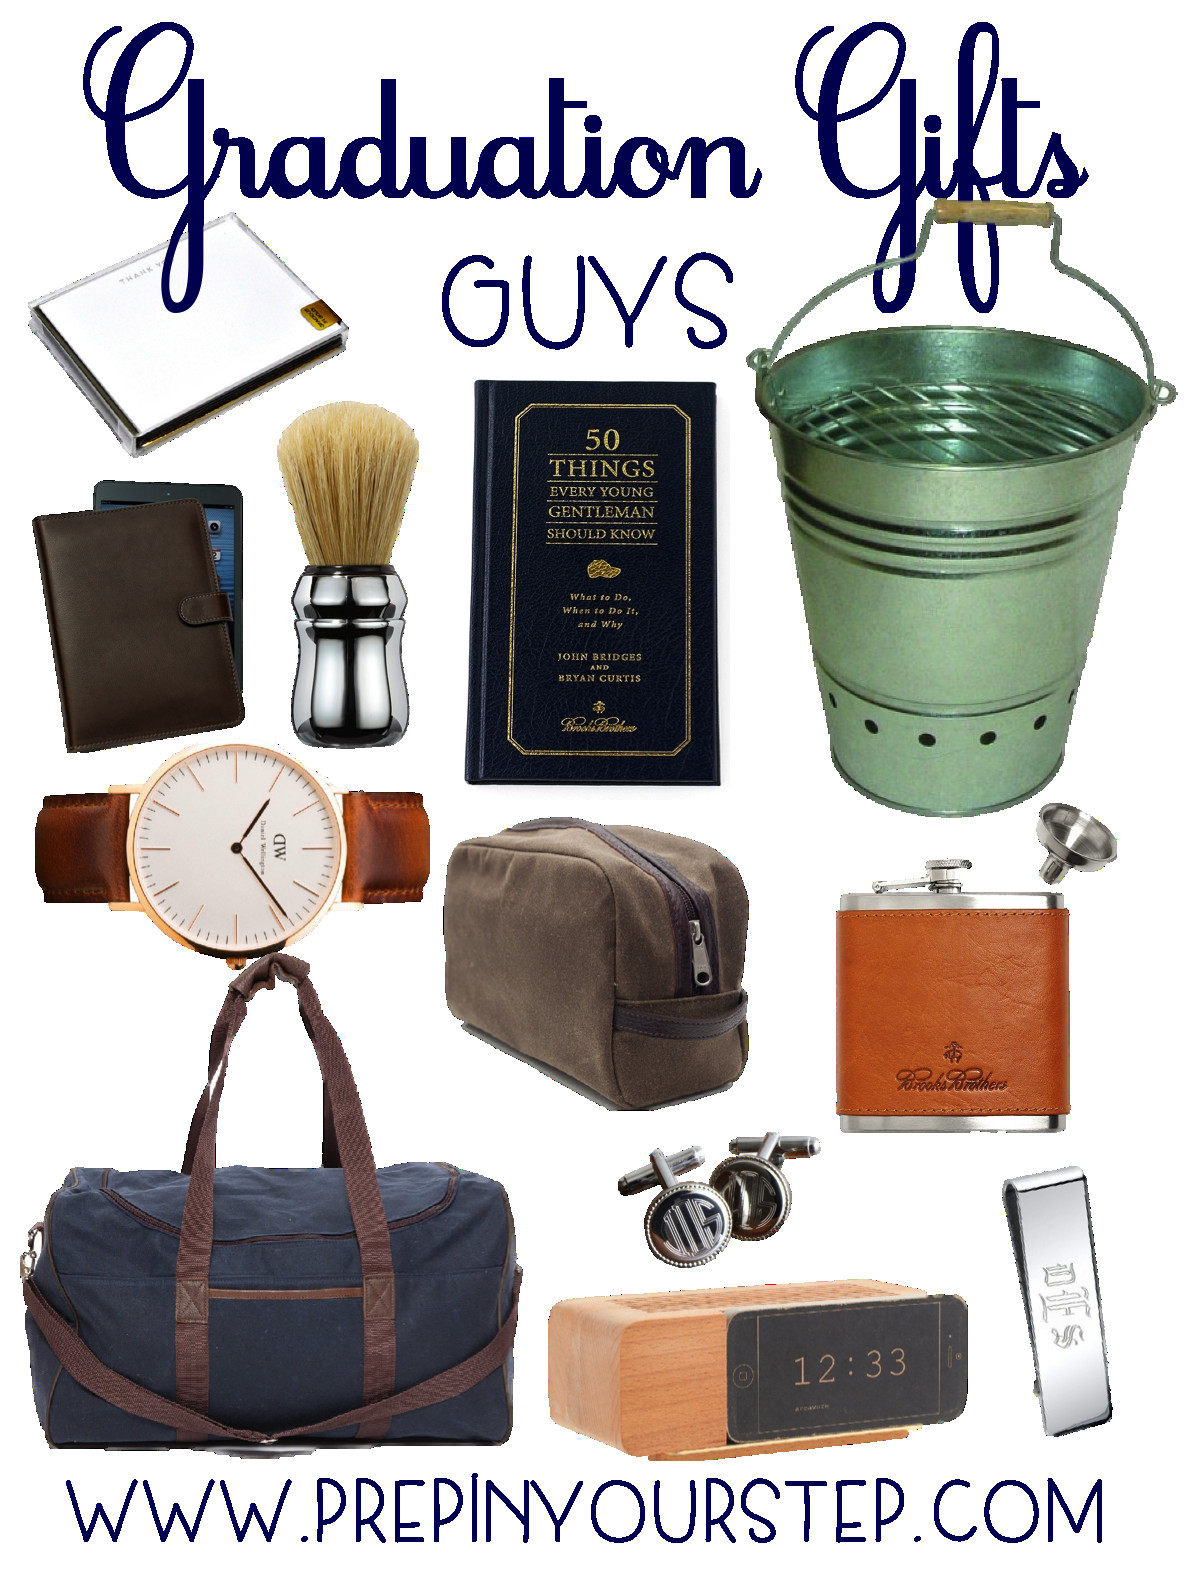 Best ideas about Gift Ideas For College Boys . Save or Pin Graduation Gift Ideas Guys & Girls Prep In Your Step Now.